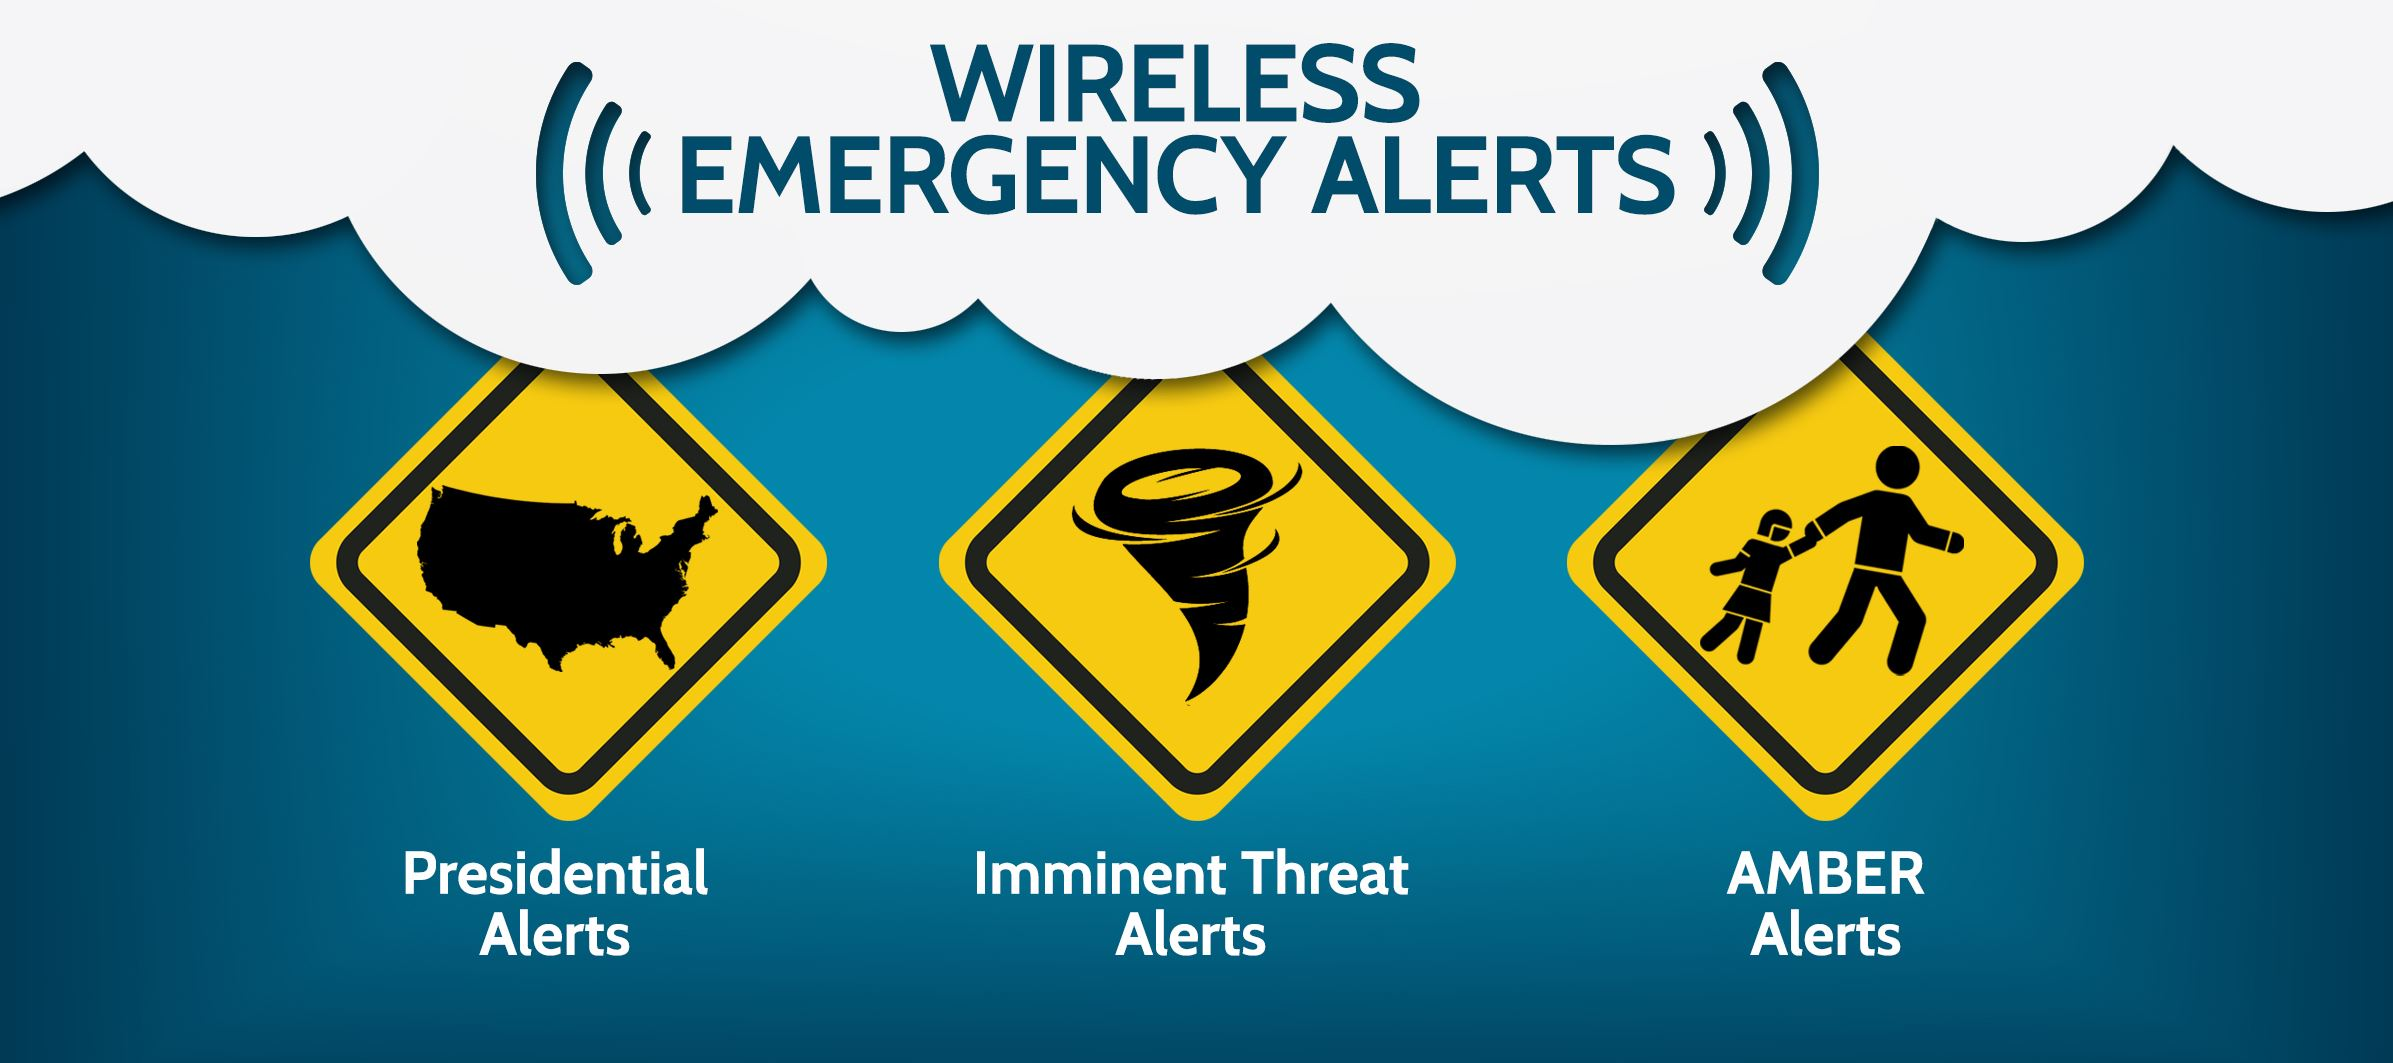 Wireless Emergency Alerts - Presidential Alerts, Imminent Threat Alerts, AMBER Alerts